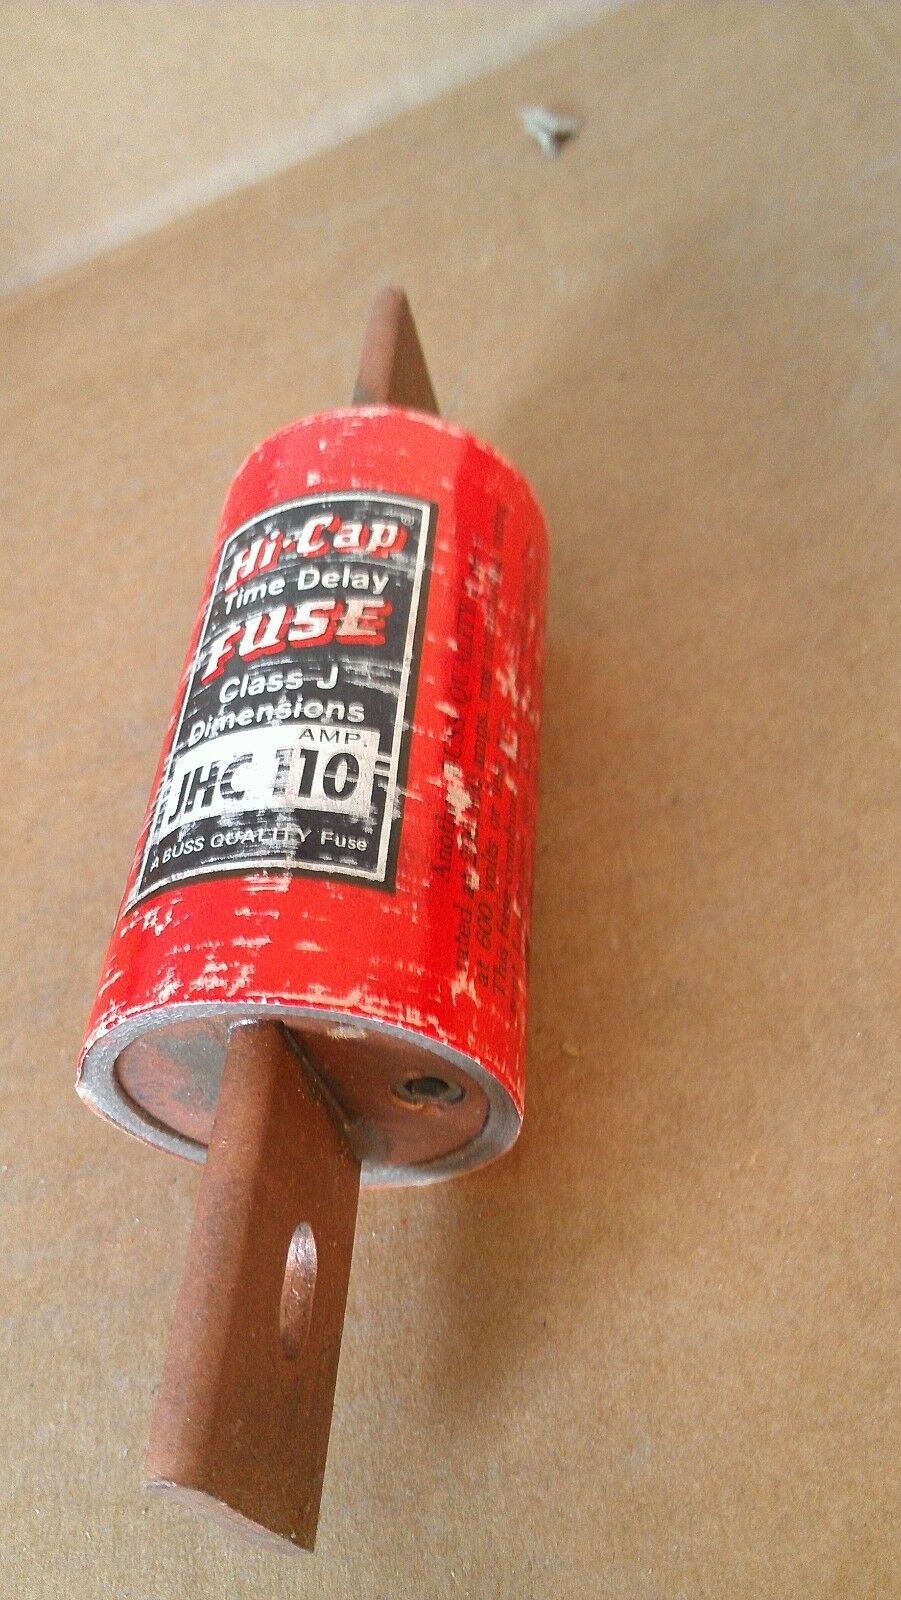 Old Stock Buss Jhc110 110 Amp Fuse 600 Vac Hi Cap Time Delay Class J S Type Box Picture 1 Of